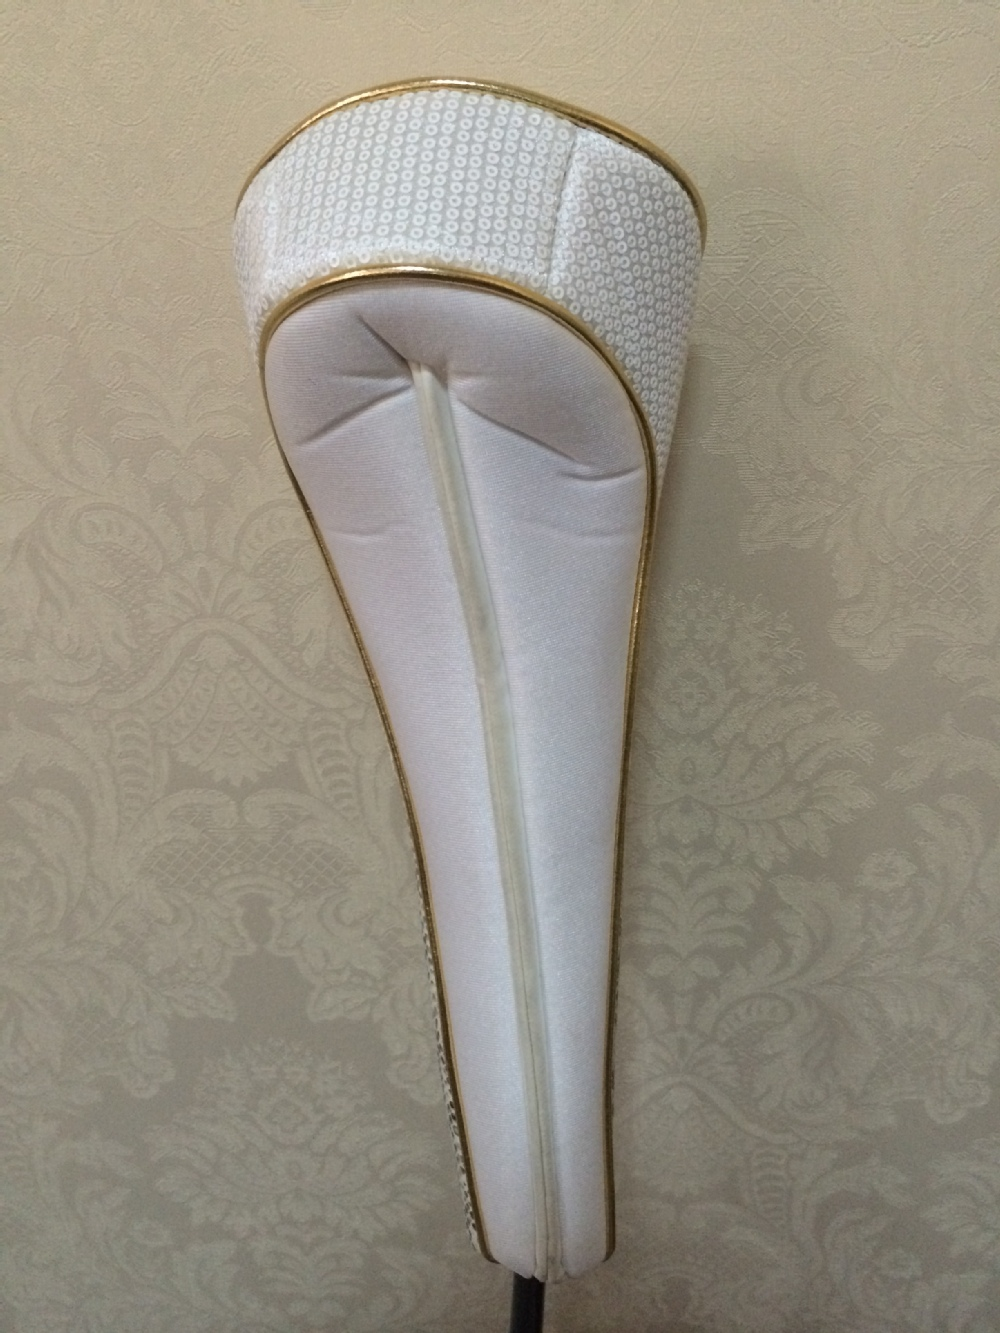 Exclusive classic pearl white golf head cover